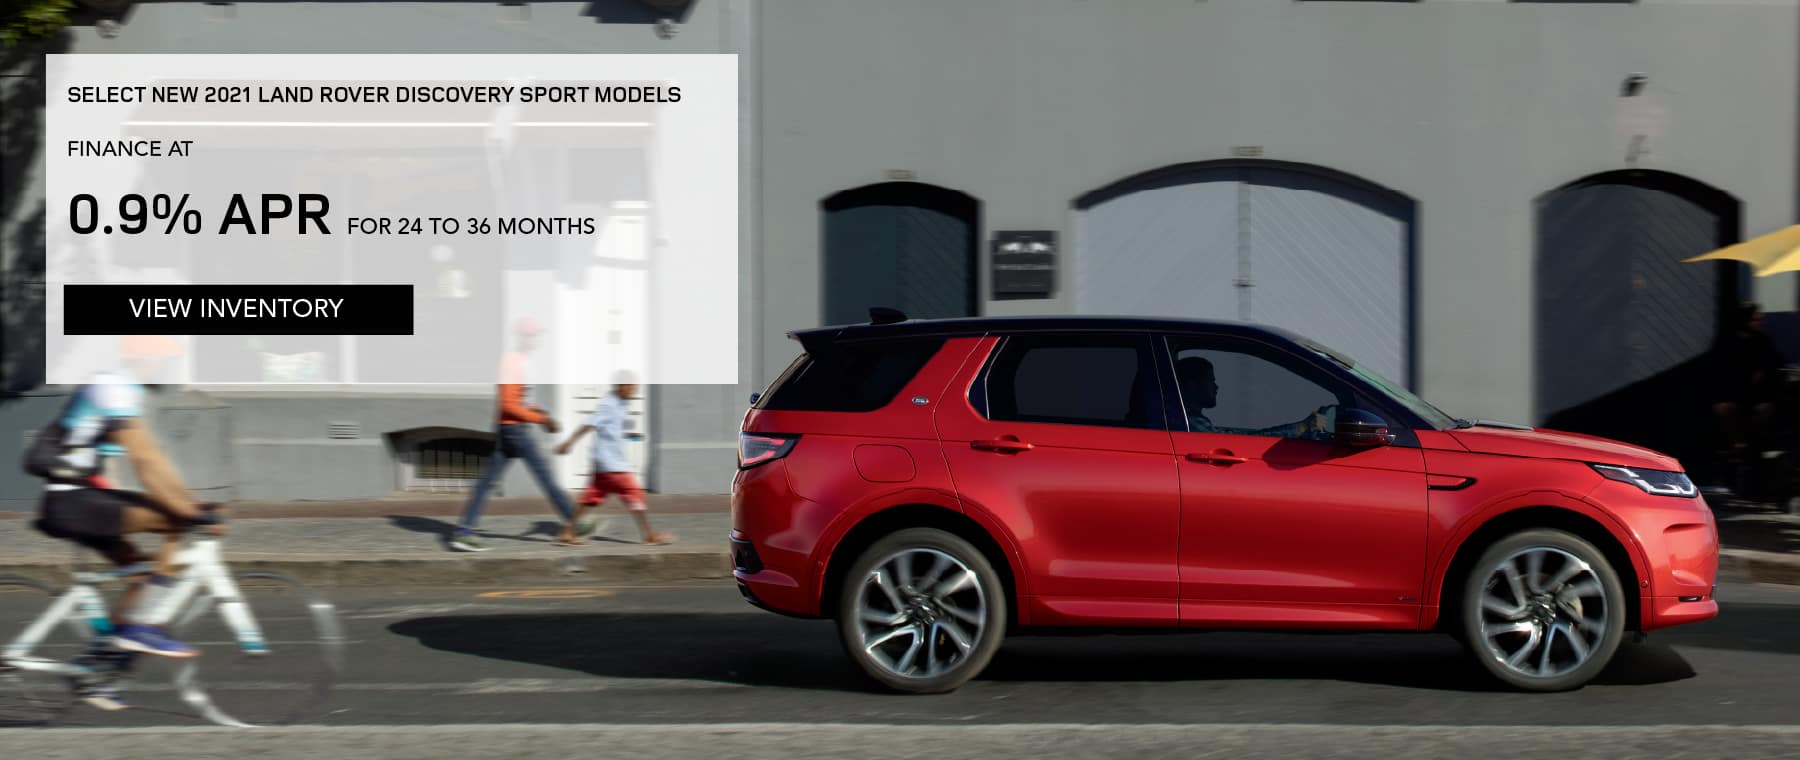 SELECT NEW 2021 LAND ROVER DISCOVERY SPORT MODELS. FINANCE AT 0.9% APR FOR 24 TO 36 MONTHS. EXCLUDES TAXES, TITLE, LICENSE AND FEES. OFFER ENDS 8/2/2021. VIEW INVENTORY. RED LAND ROVER DISCOVERY SPORT DRIVING THROUGH CITY.